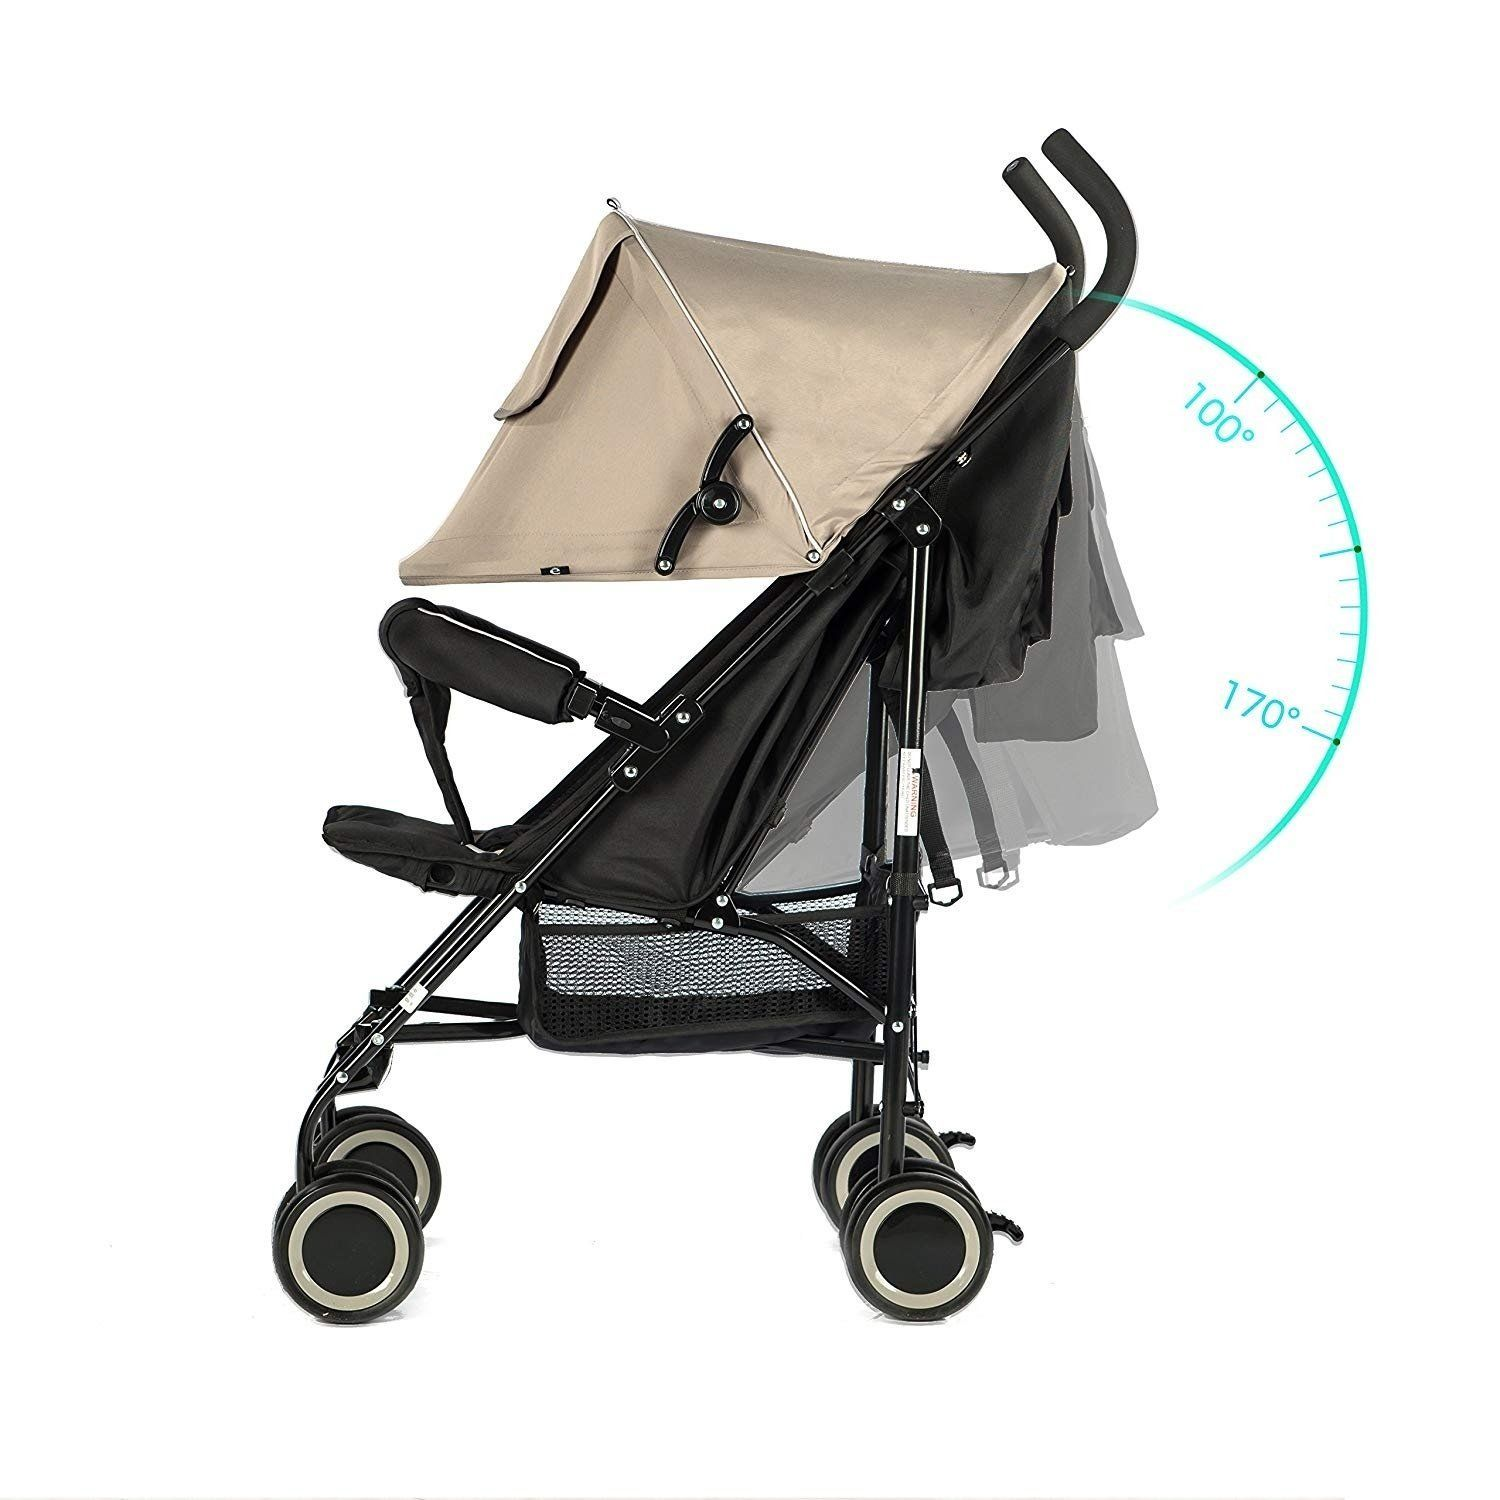 35++ Lightweight stroller with canopy info